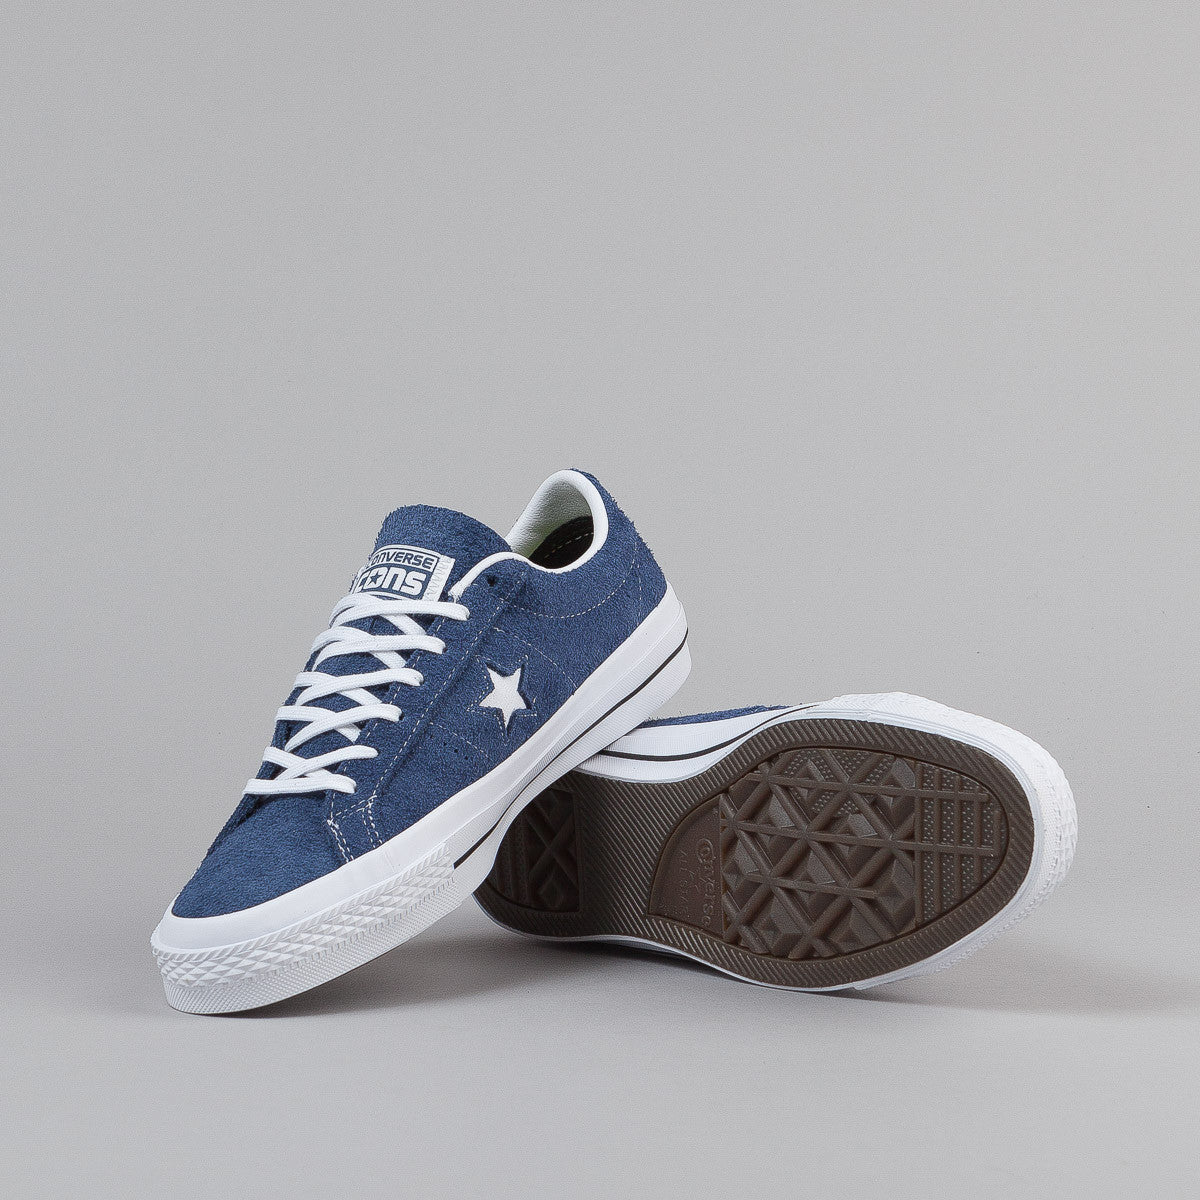 Converse One Star OX Shoes - Navy / White / Gum